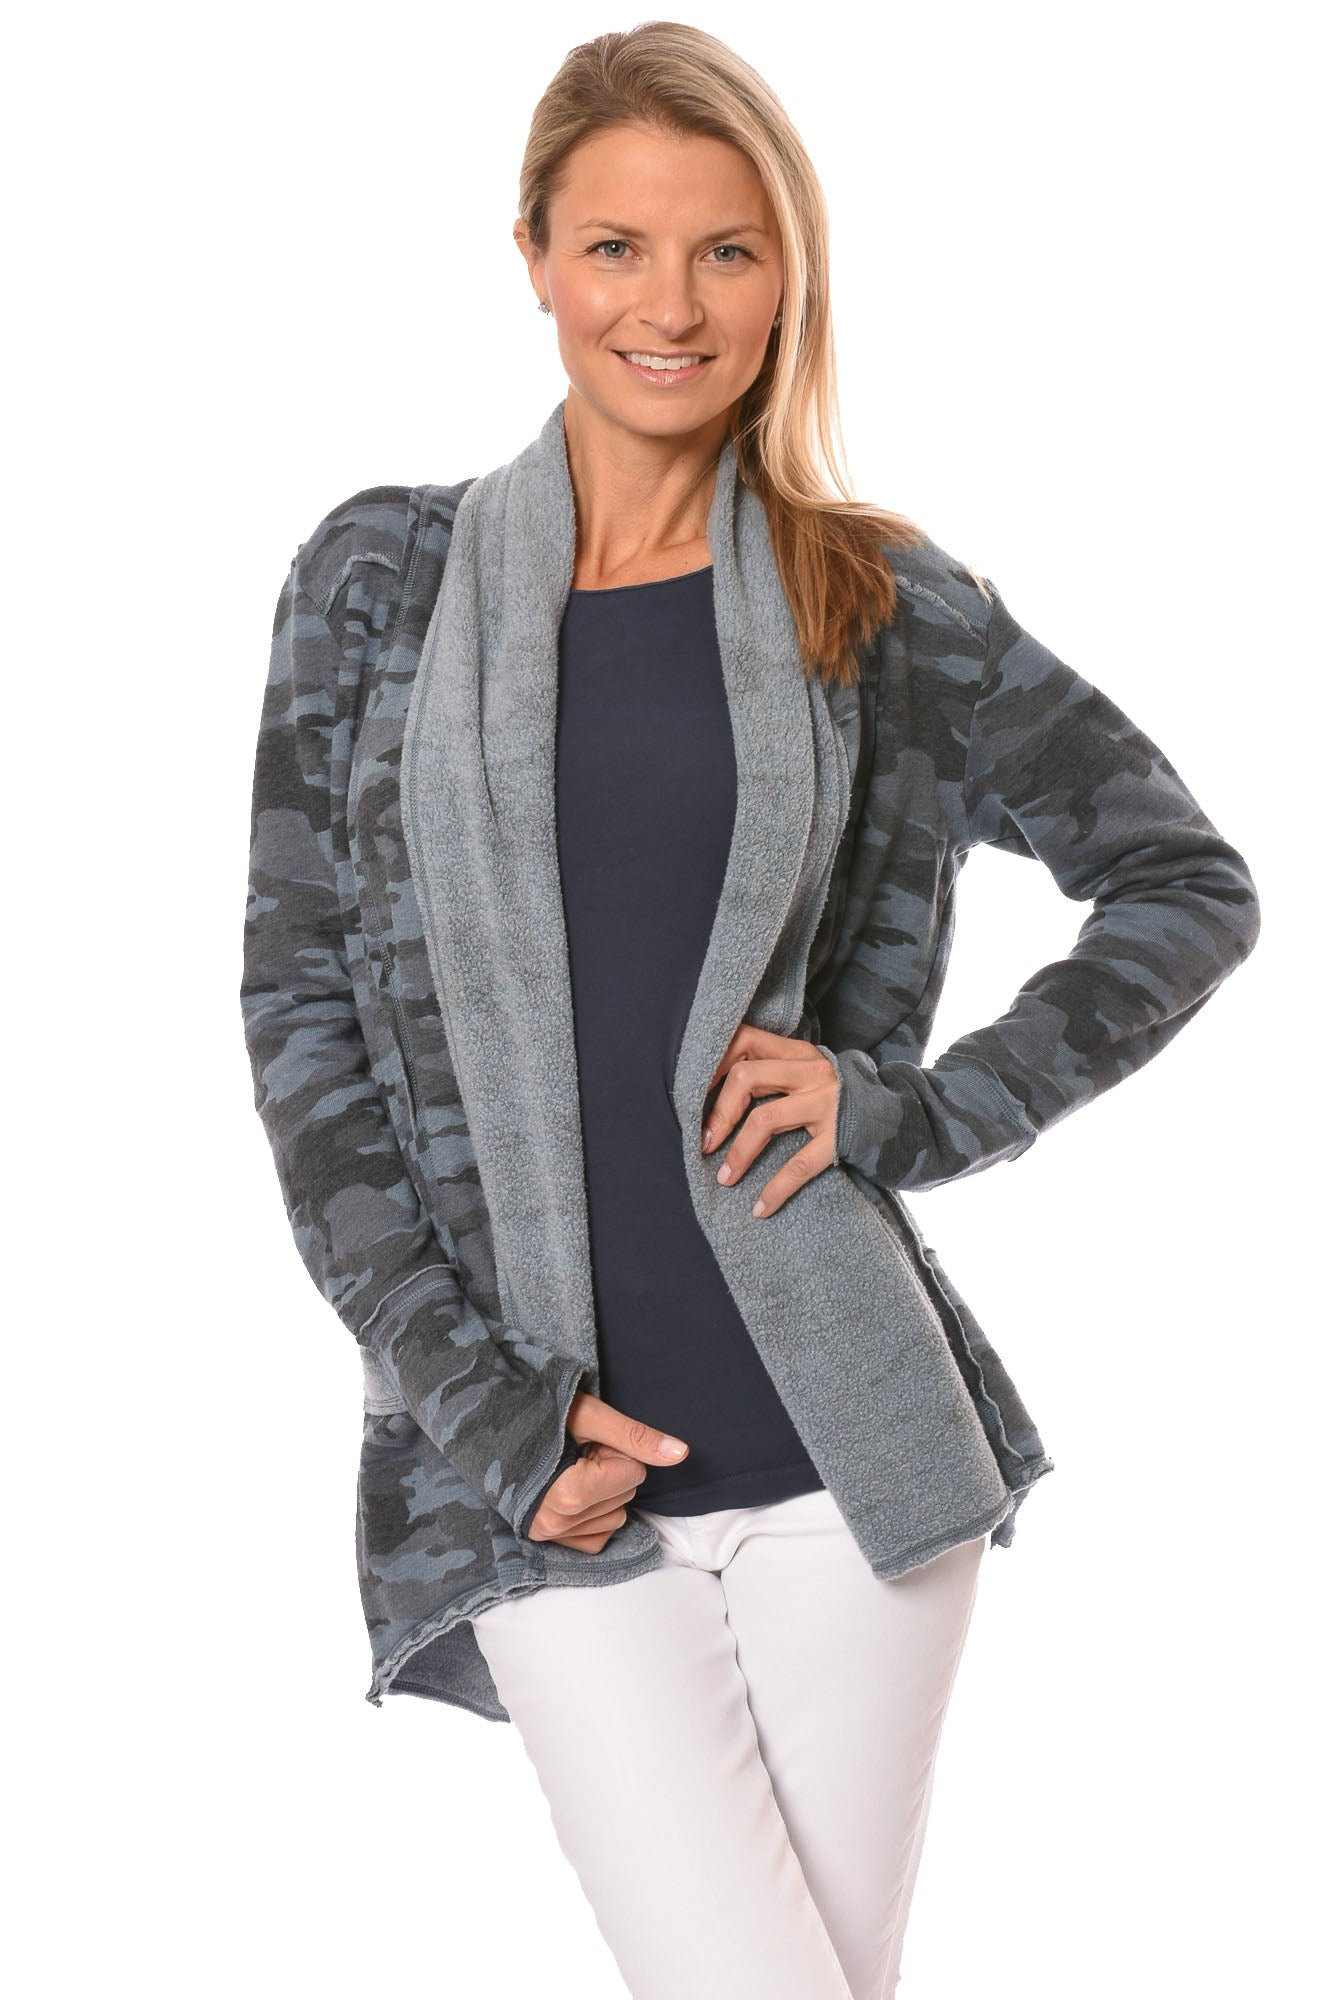 Hard Tail Forever - Tri Blend Slouchy Cardigan (CAMF-06, Camo Steel)